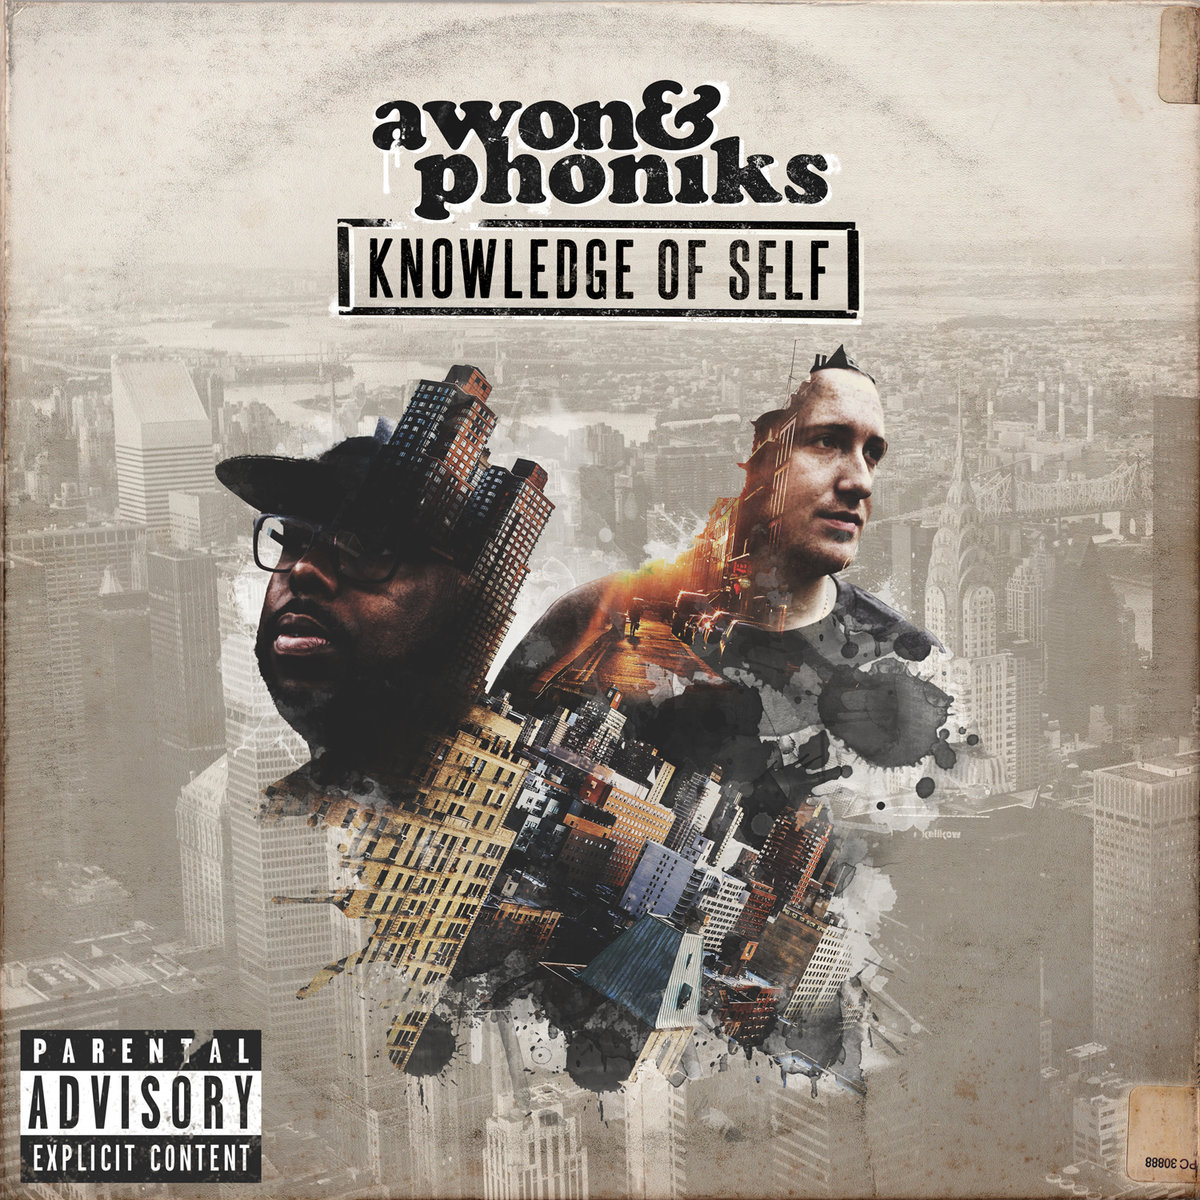 AWON & PHONIKS – KNOWLEDGE OF SELF LP Review